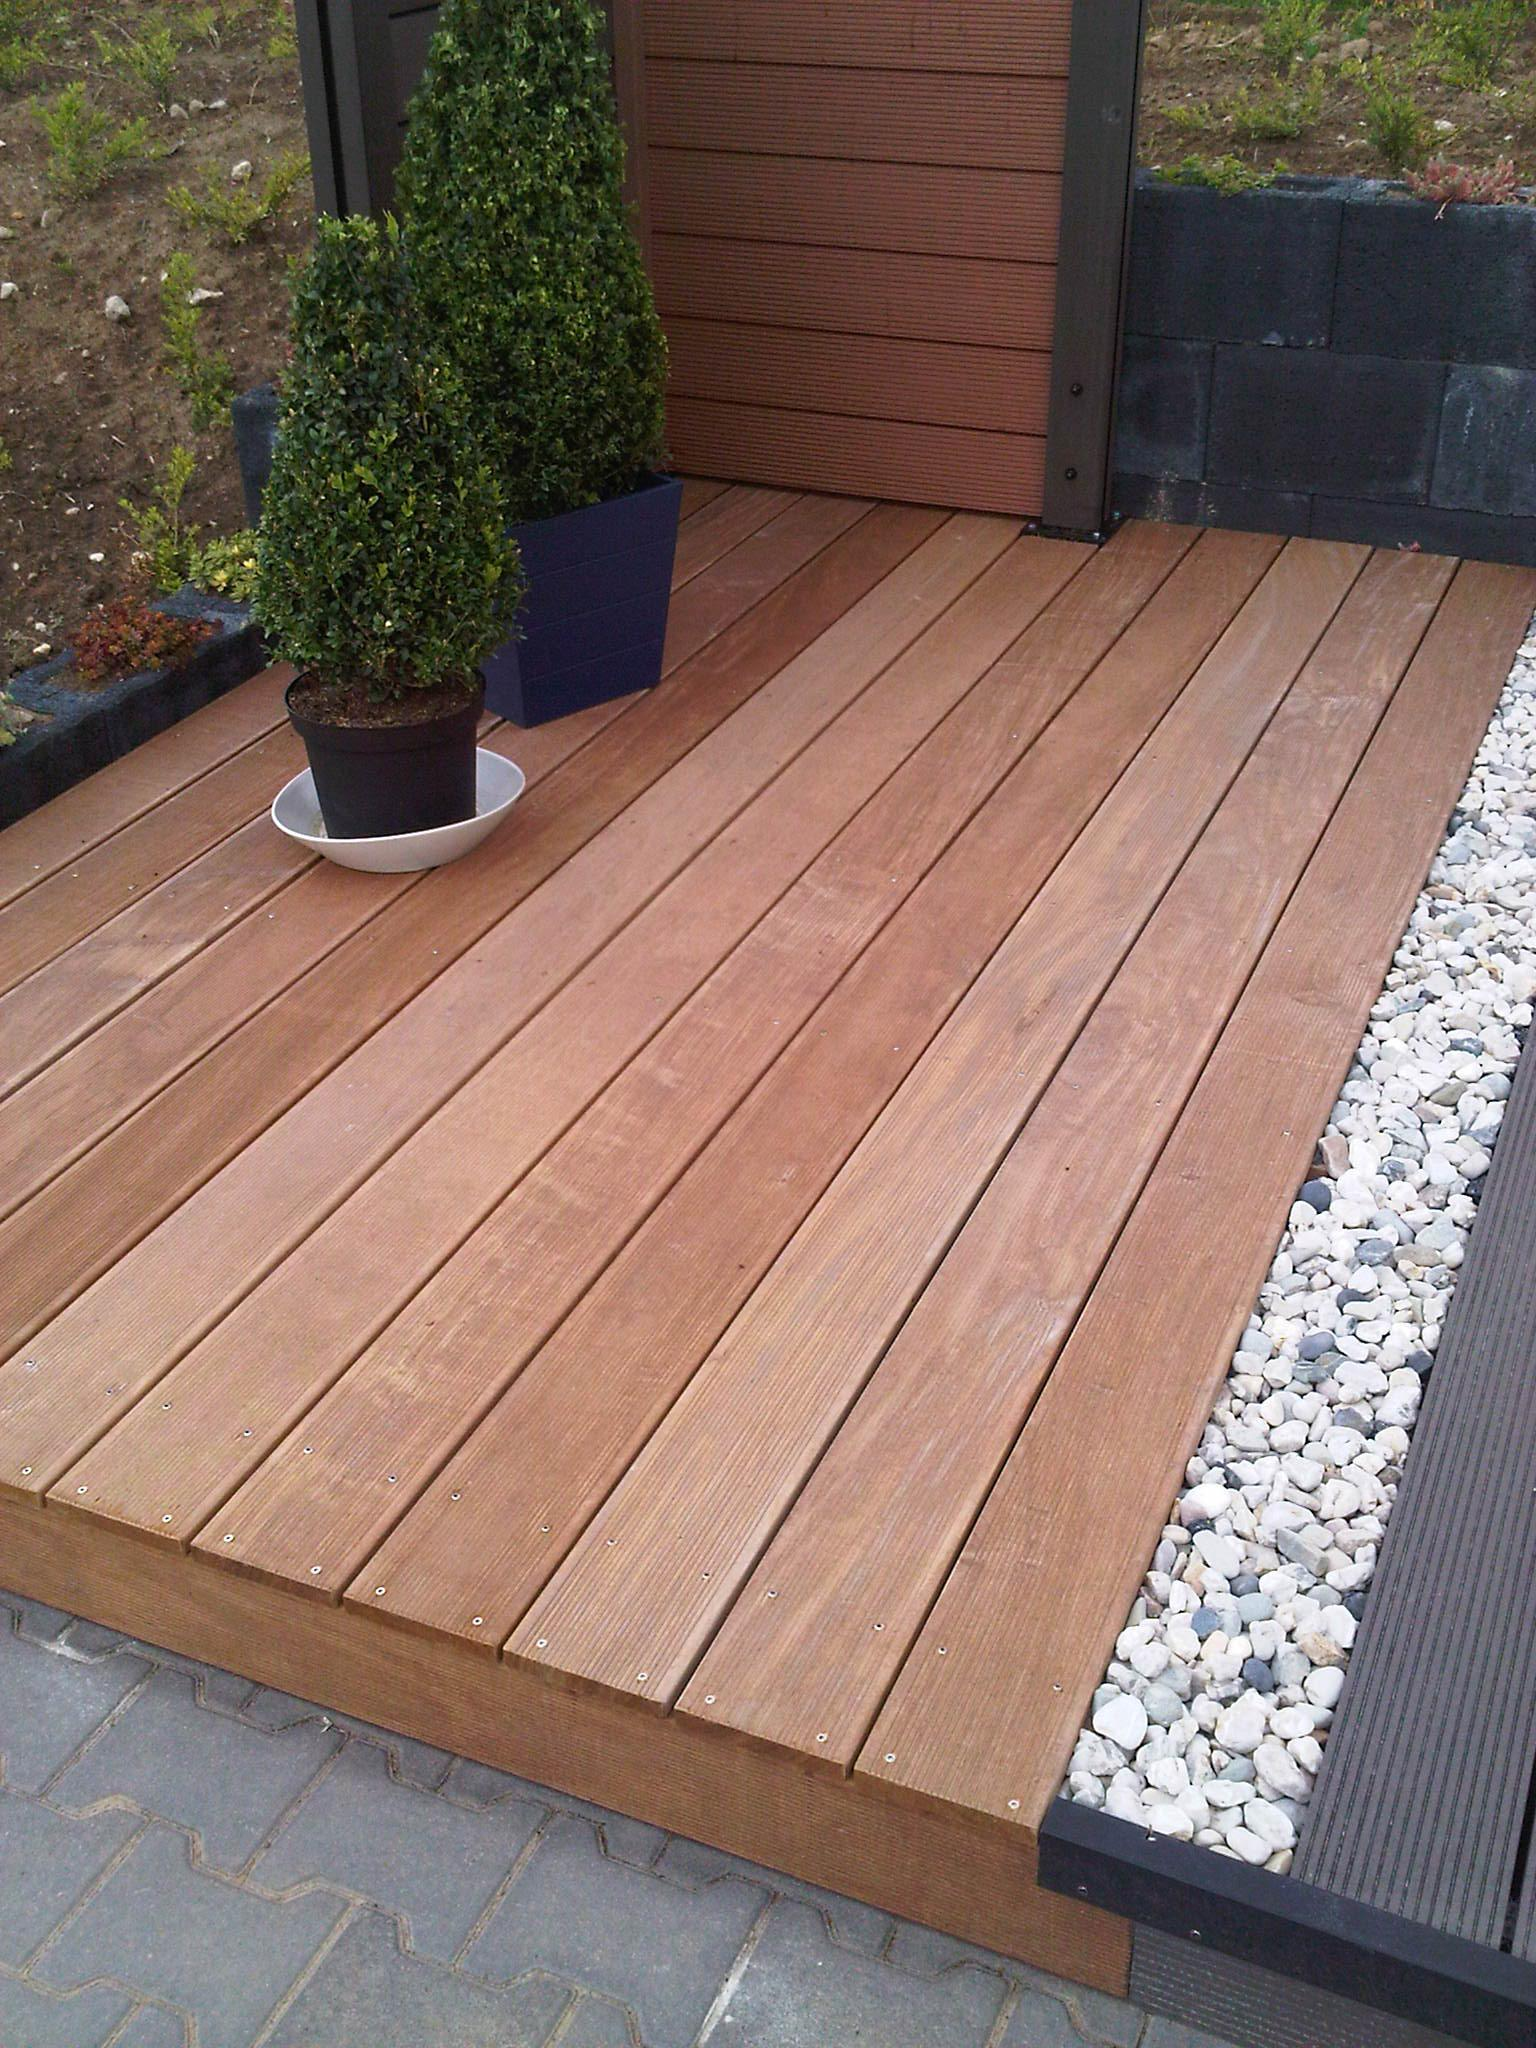 Pin Terrasse En Bois Ipe Gazon De Plaquage on Pinterest